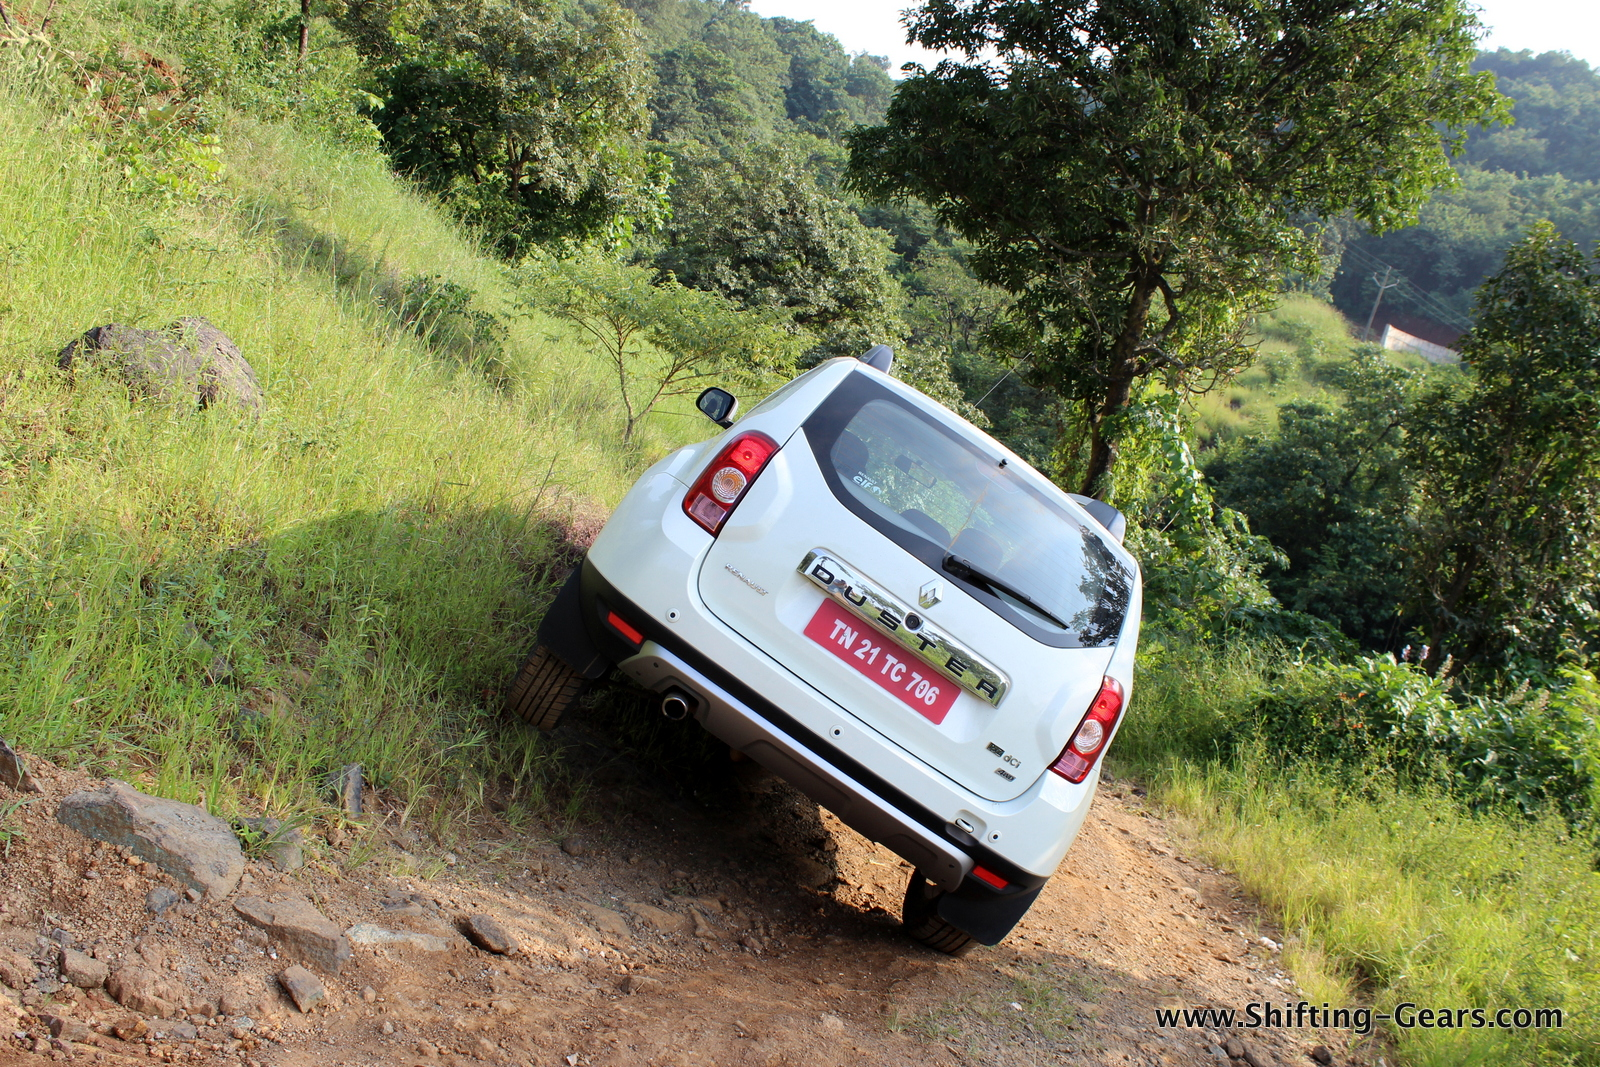 The car remains composed while tackling uneven terrain